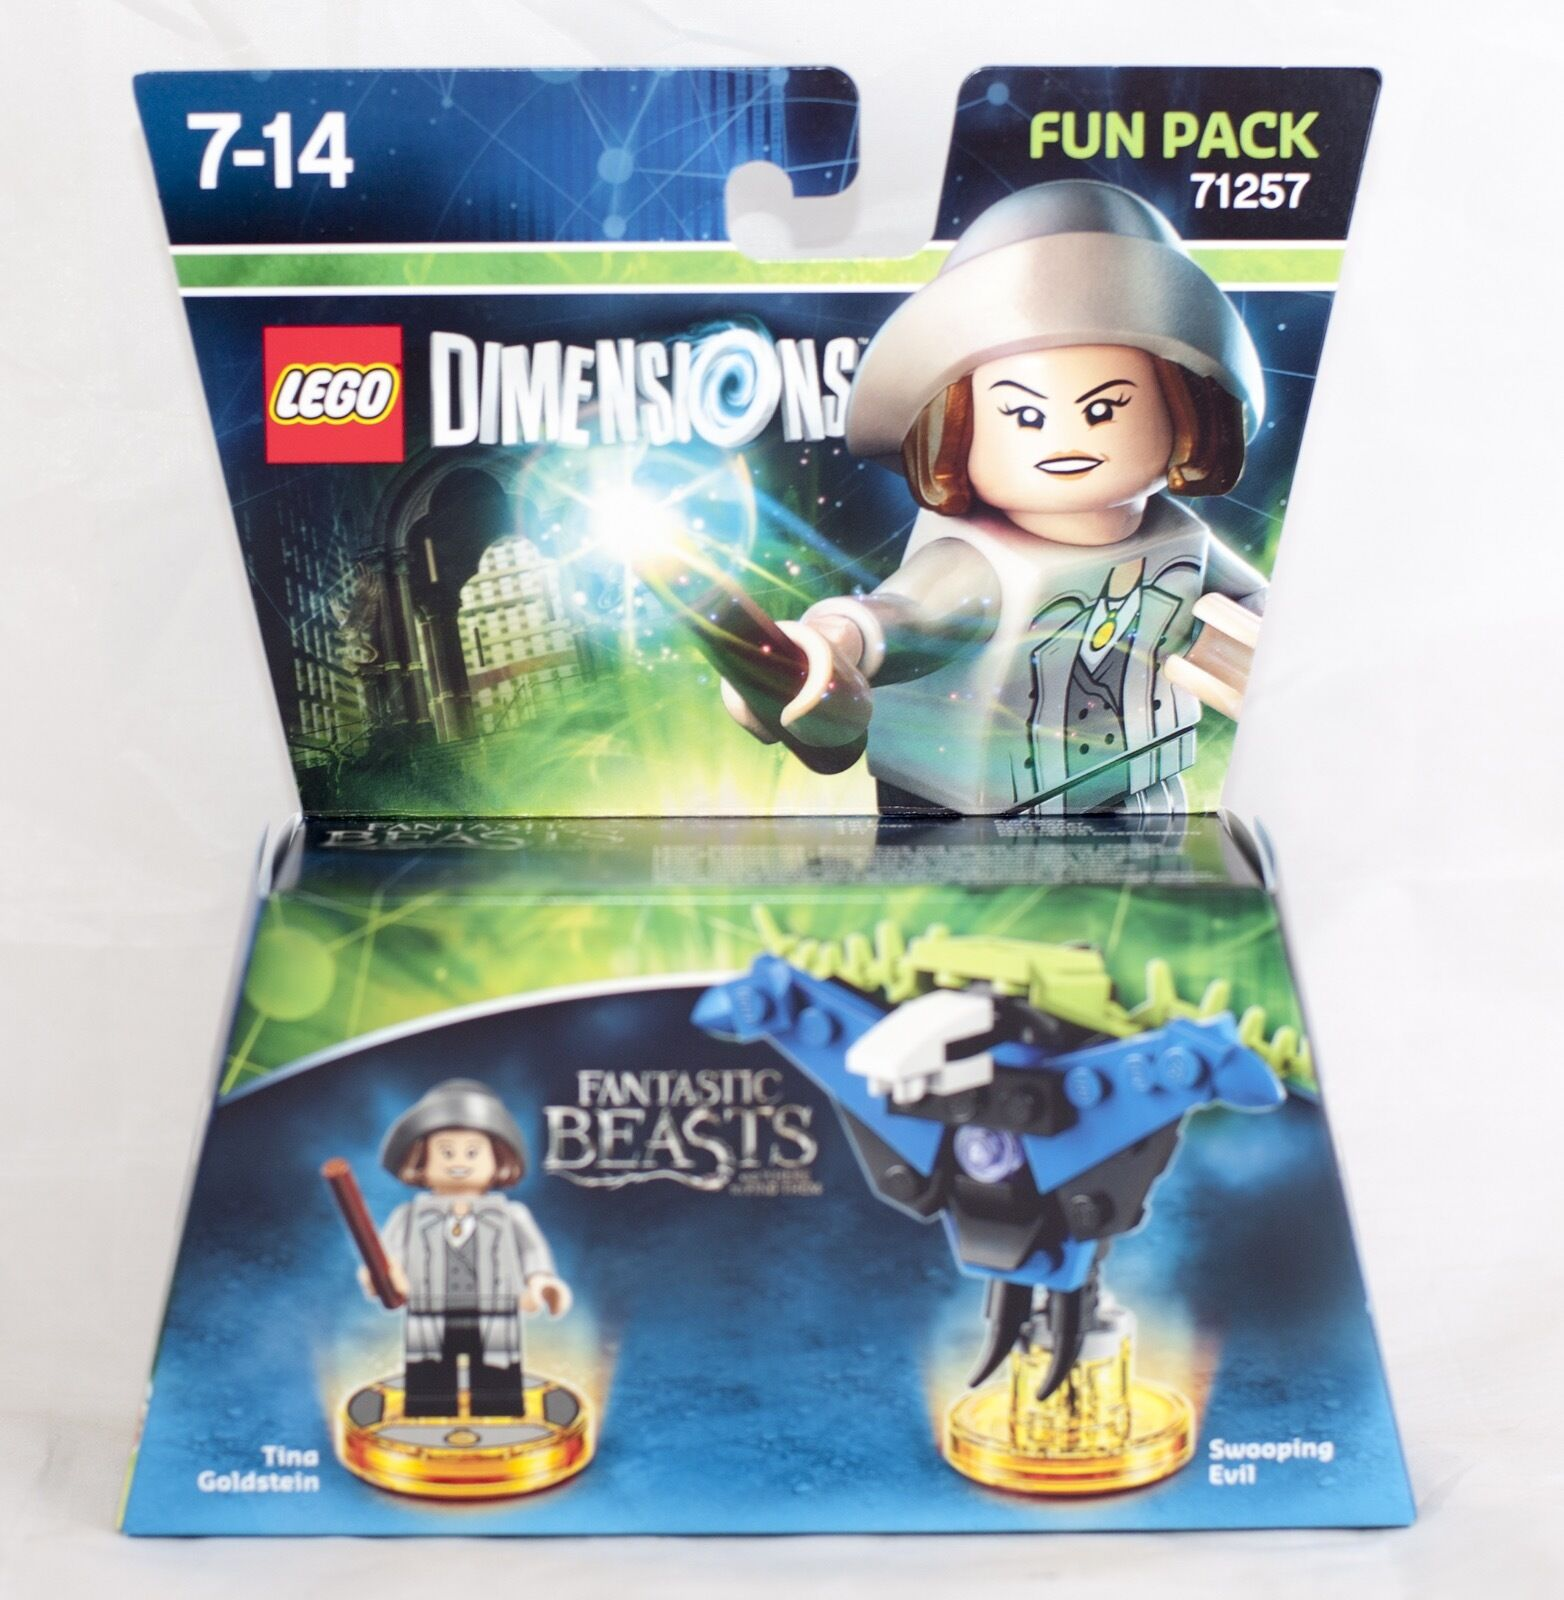 LEGO 71257 Dimensions Fun Character Figure Pack Tina Goldstein Swooping Evil